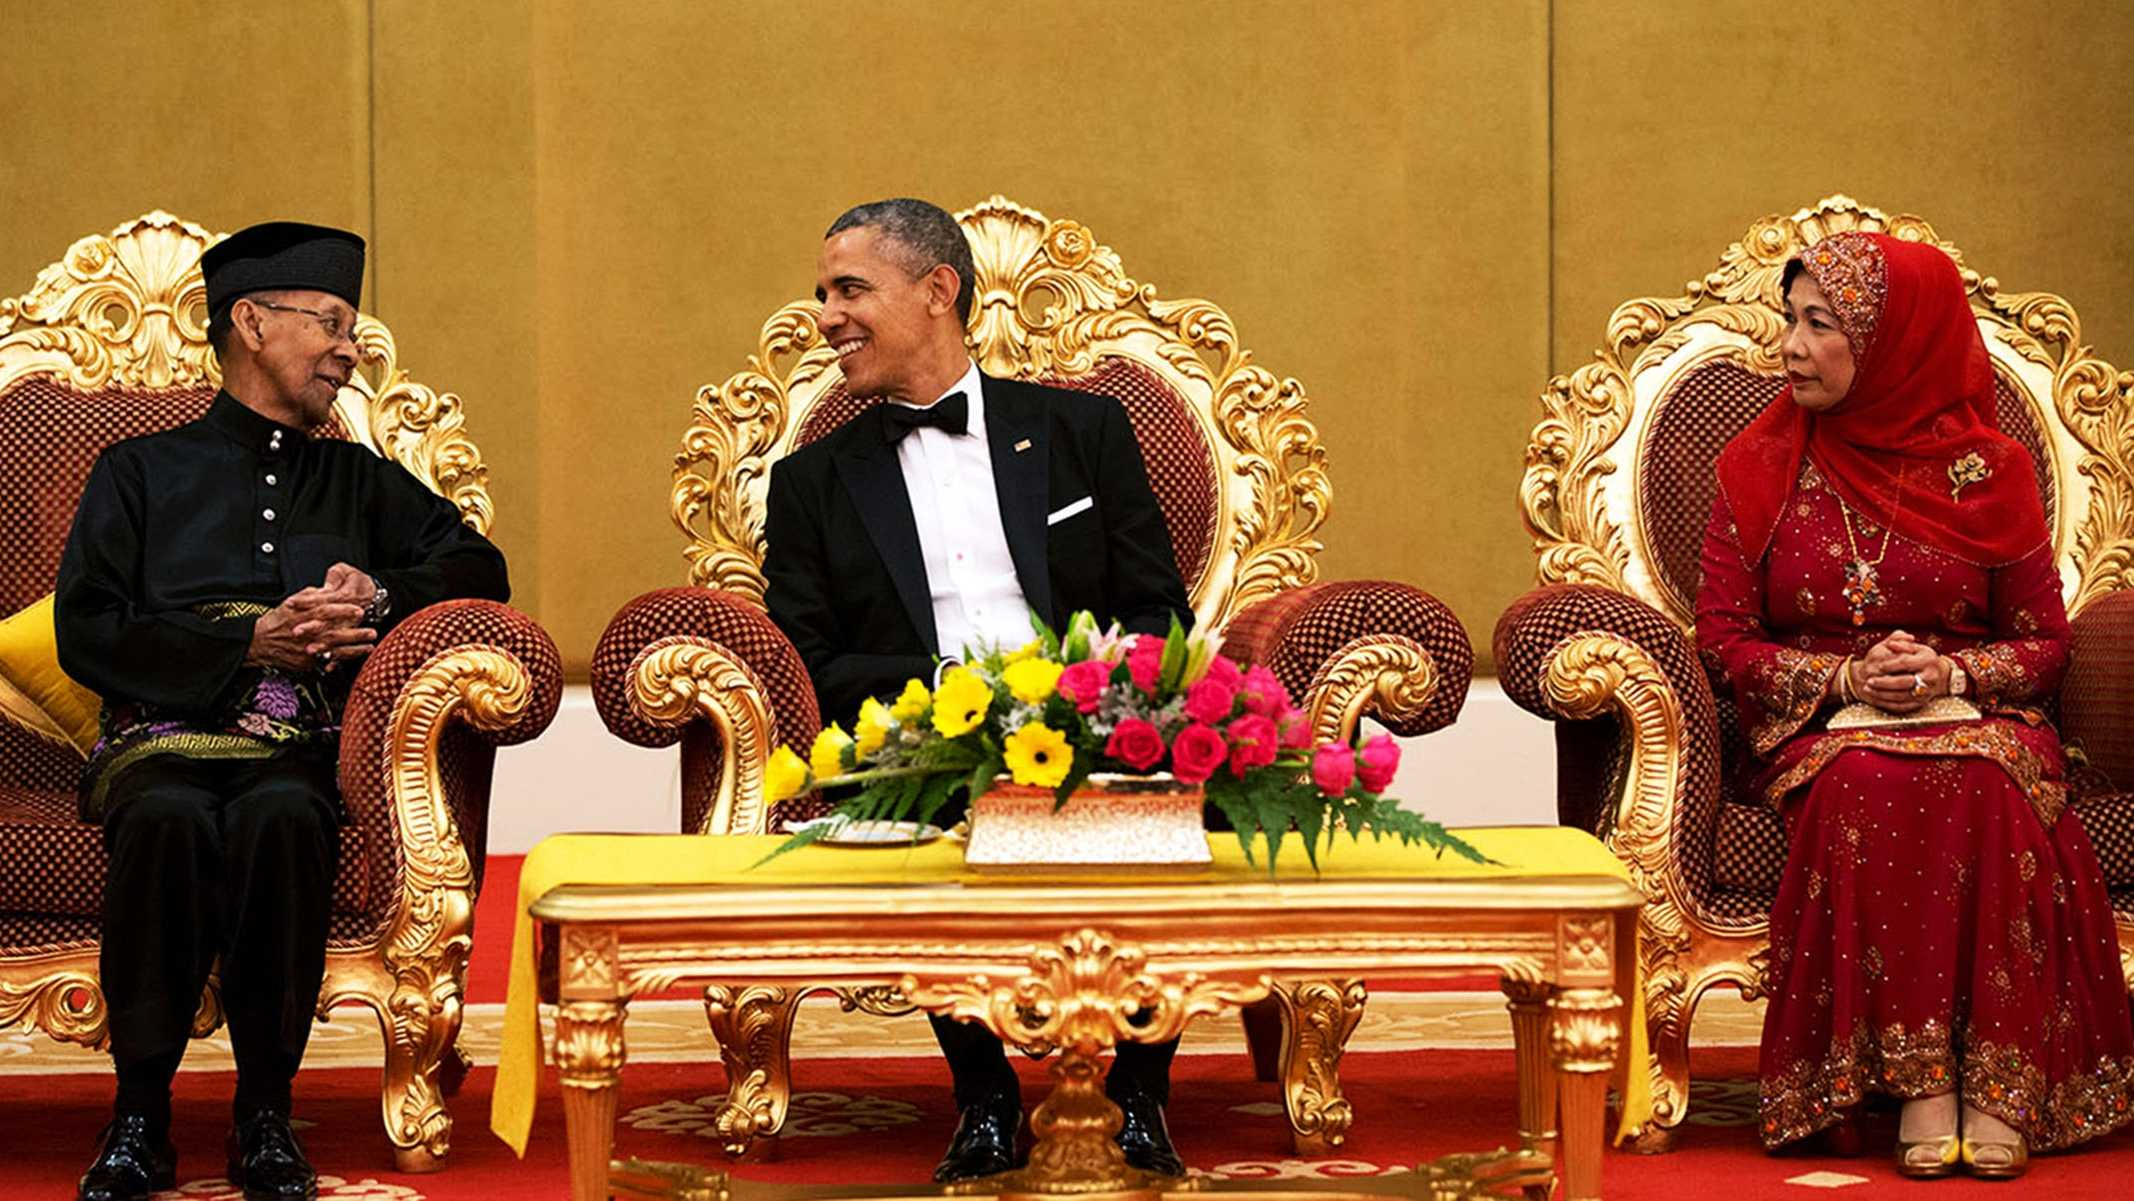 On Thursday President Barack Obama said he is looking forward to the day he can wear sweatpants to work. Obama is seen here meeting with the King and Queen ofMalaysia in April 2014.